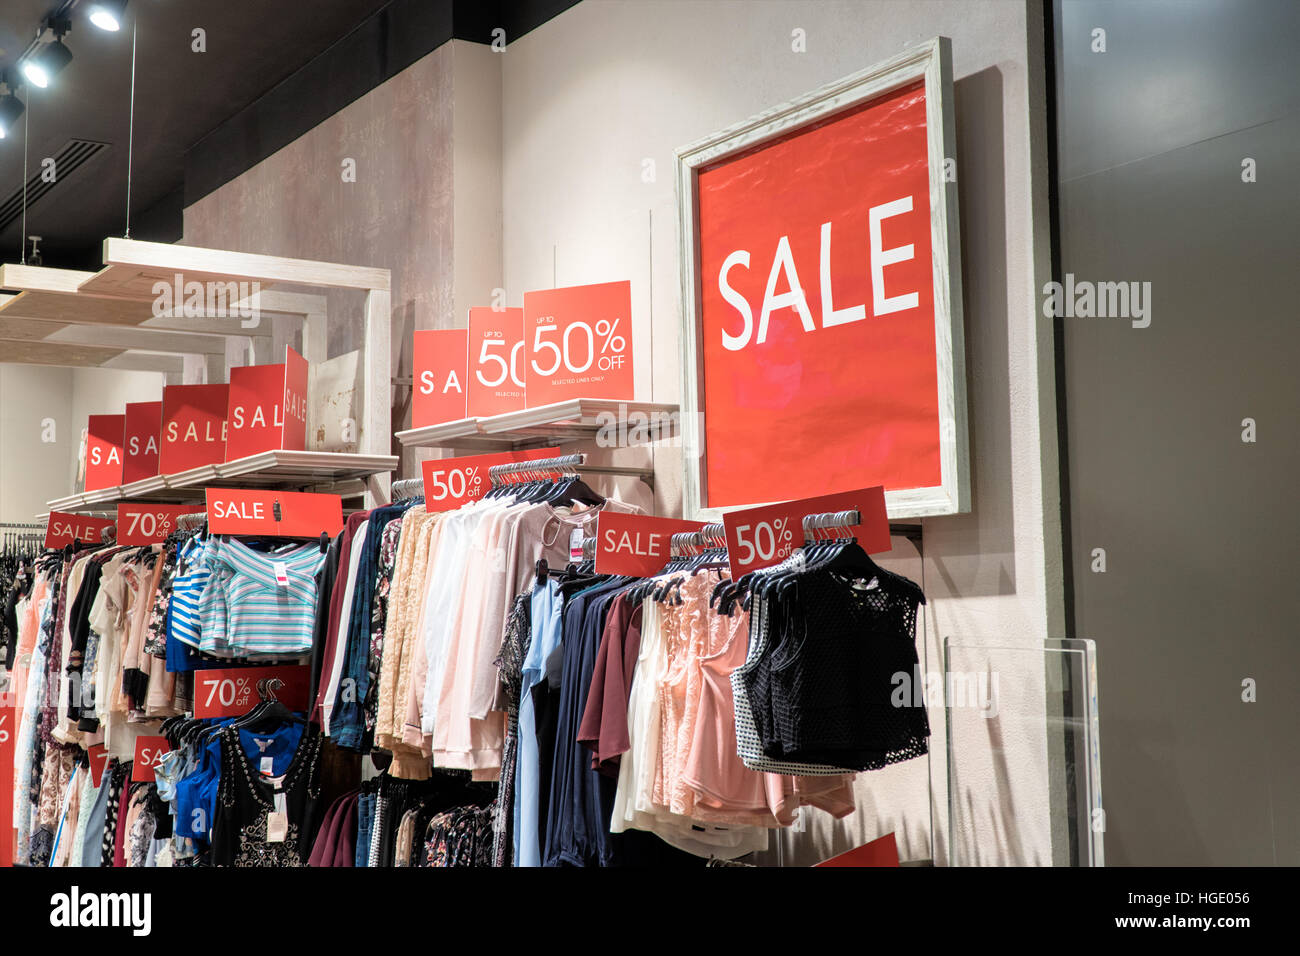 8132508a03 Clearance Sale Advertisement Stock Photos & Clearance Sale ...